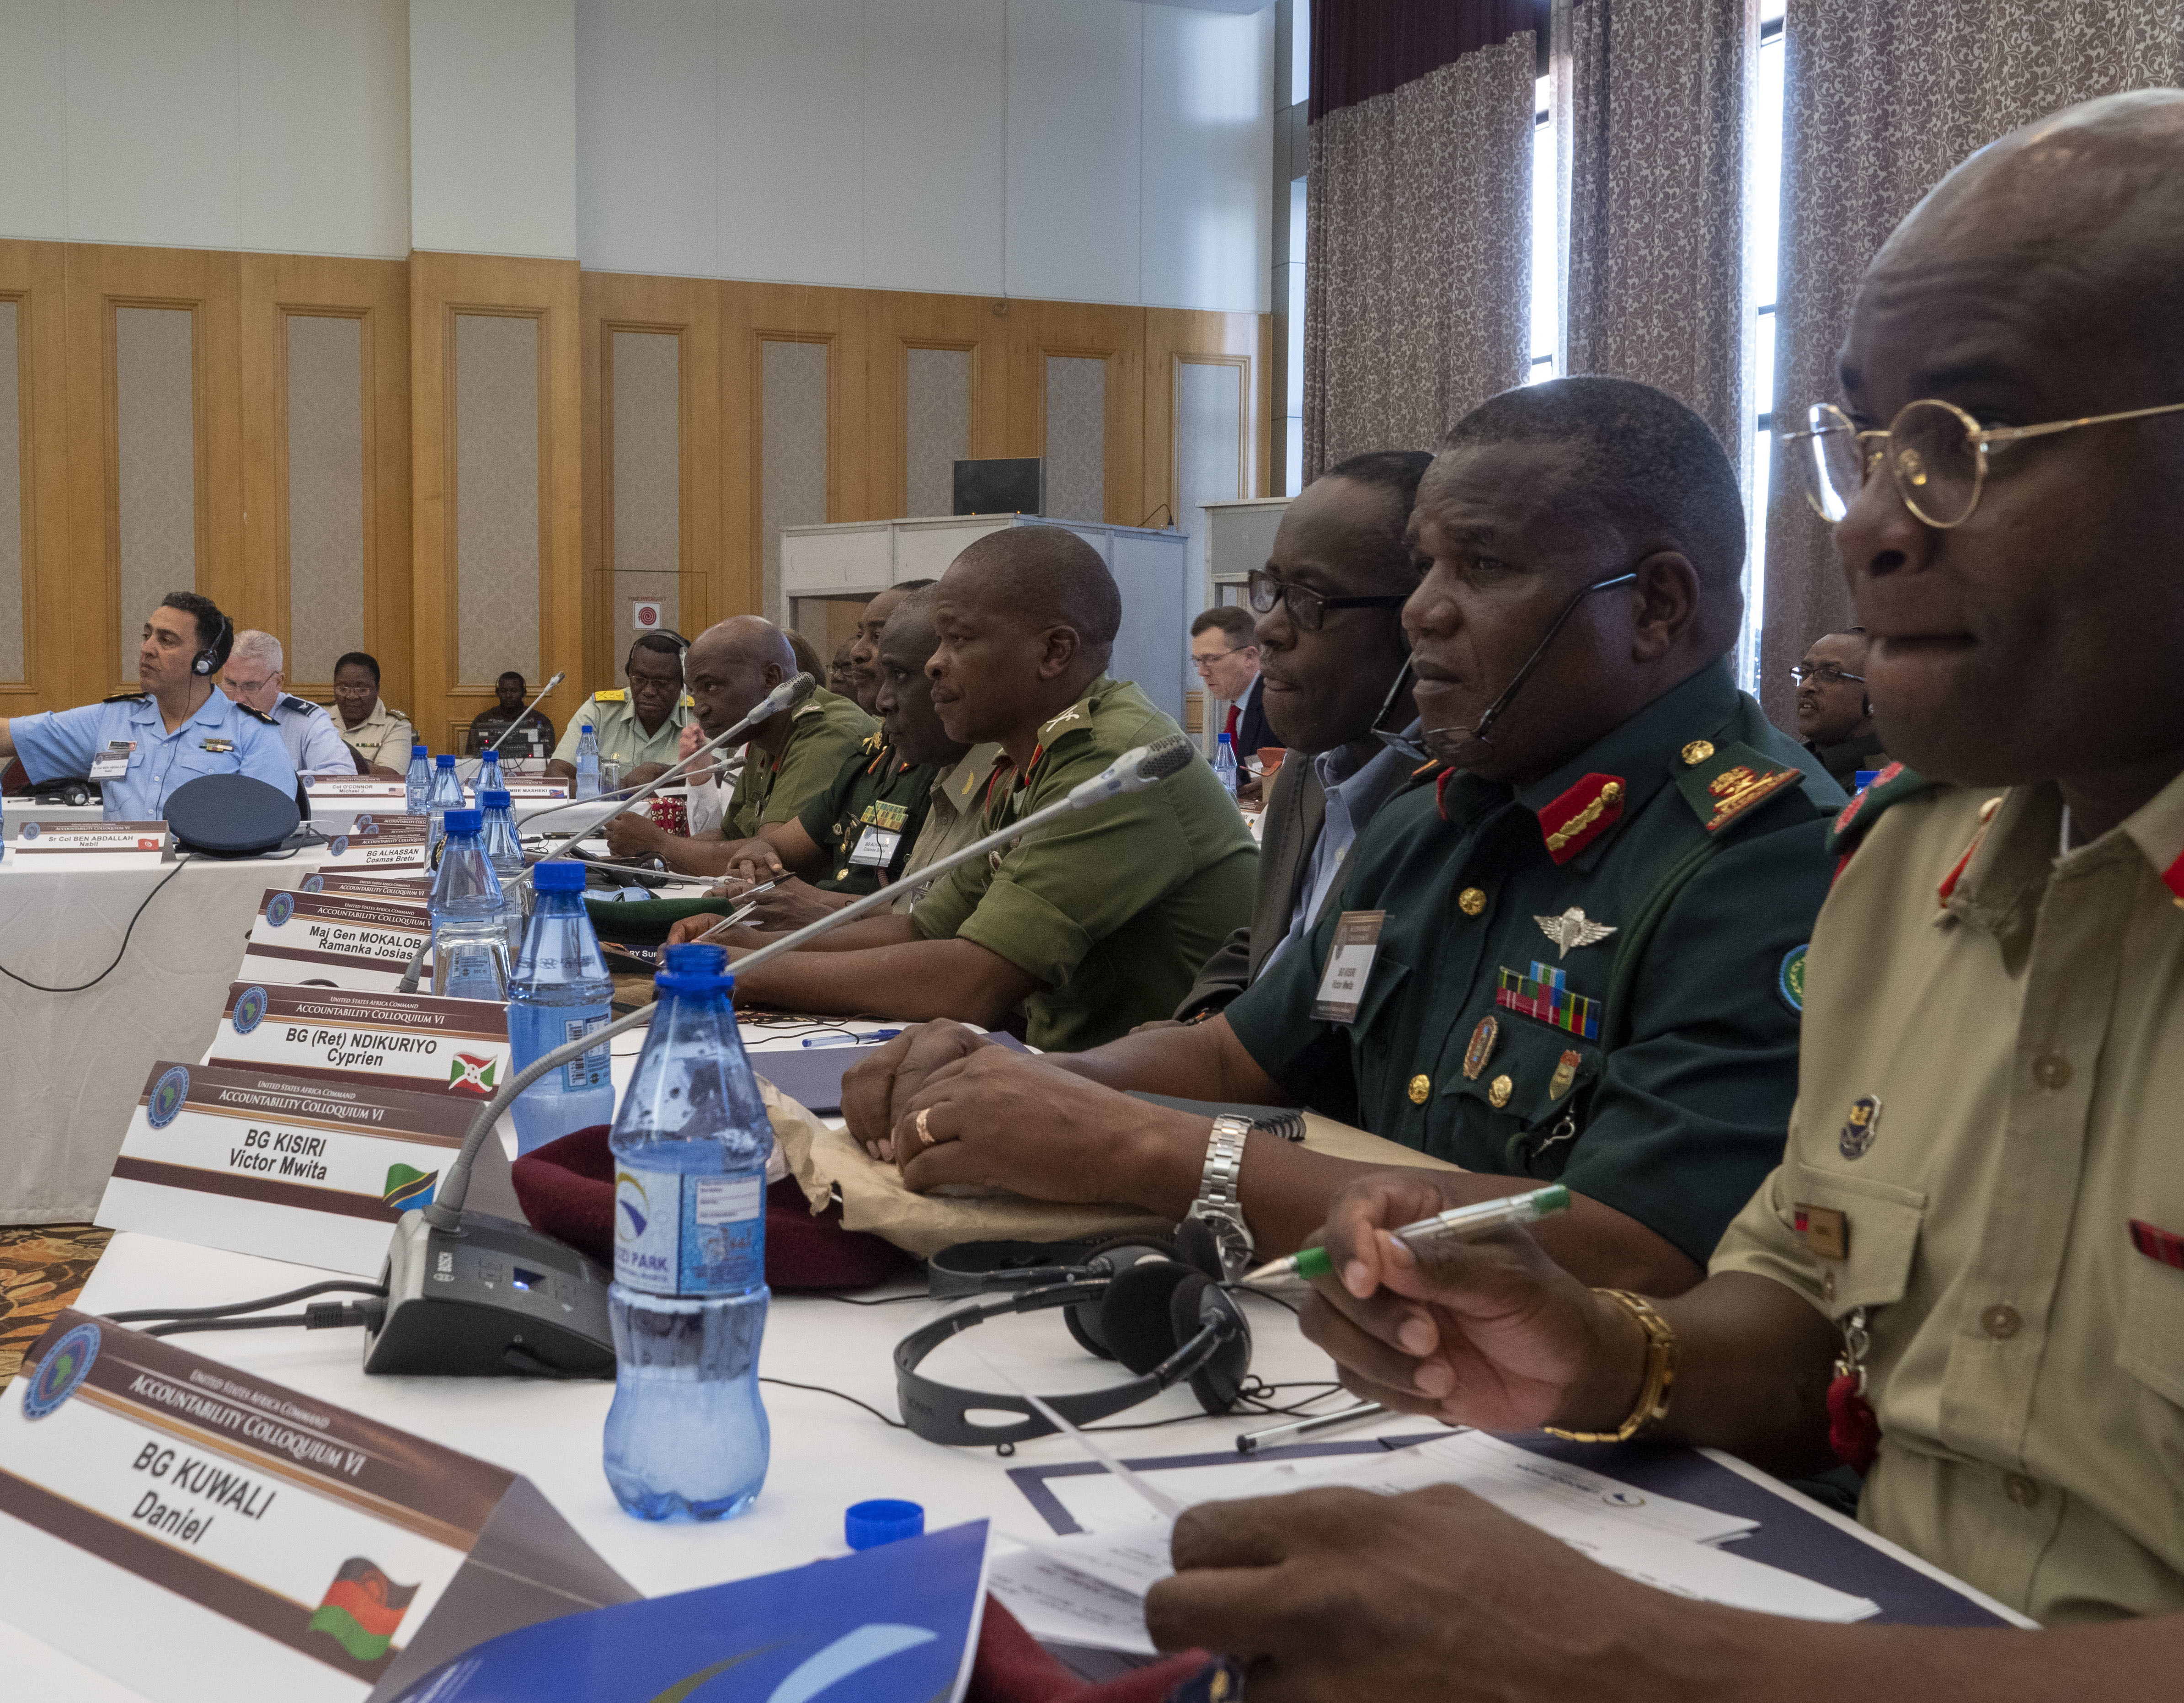 General Officer delegates to the Accountability Colloquium VI listen to a presentation being given in Lilongwe, Malawi, February 27, 2019. From right: Brigadier General Dan Kuwali, Malawi; Brigadier General Victor Mwita Kisiri, Tanzania; Brigadier General (Ret) Cyprien Ndikuriyo, Burundi; Major General Ramanka Josias Mokaloba, Lesotho; Brigadier General Sabino Jamba Machado, Angola; Brigadier General Cosmas Bretu Alhassan, Ghana; Brigadier General Posa Alphonce Stemere, Lesotho; (obscured) Brigadier General Mary Chaifullo, United States of America. (DoD Photo by U.S. Army Sergeant Edward A. Salcedo)